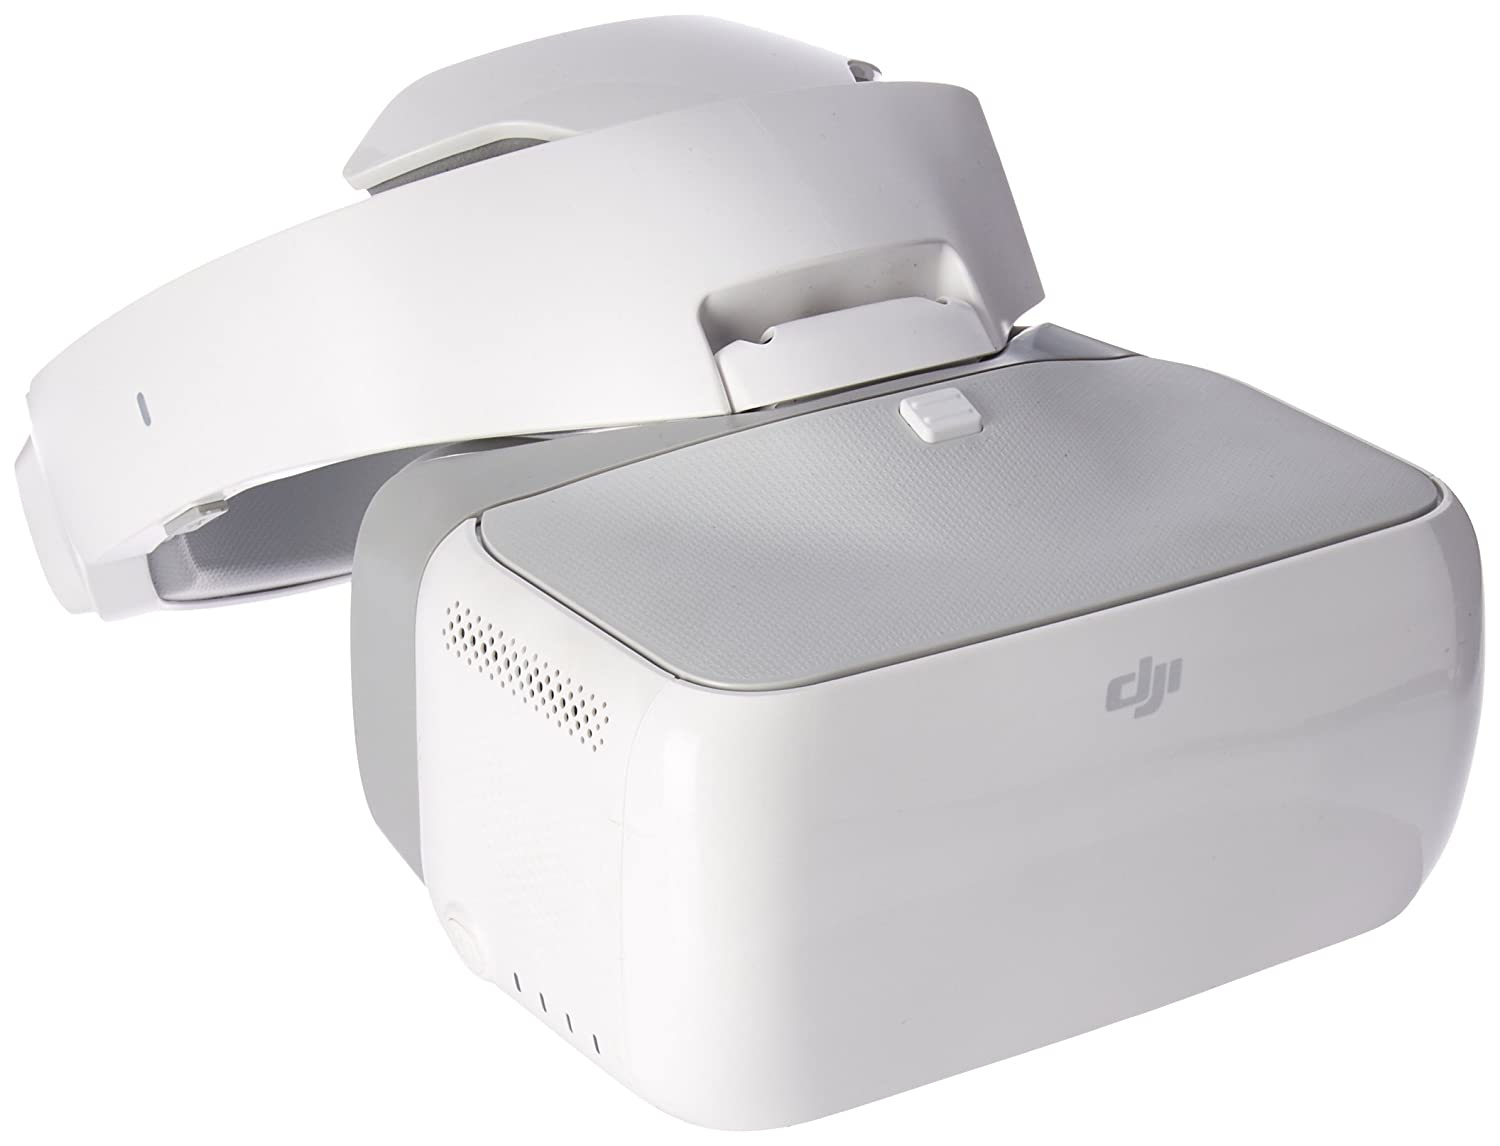 DJI Goggles Black Friday Deals 2019